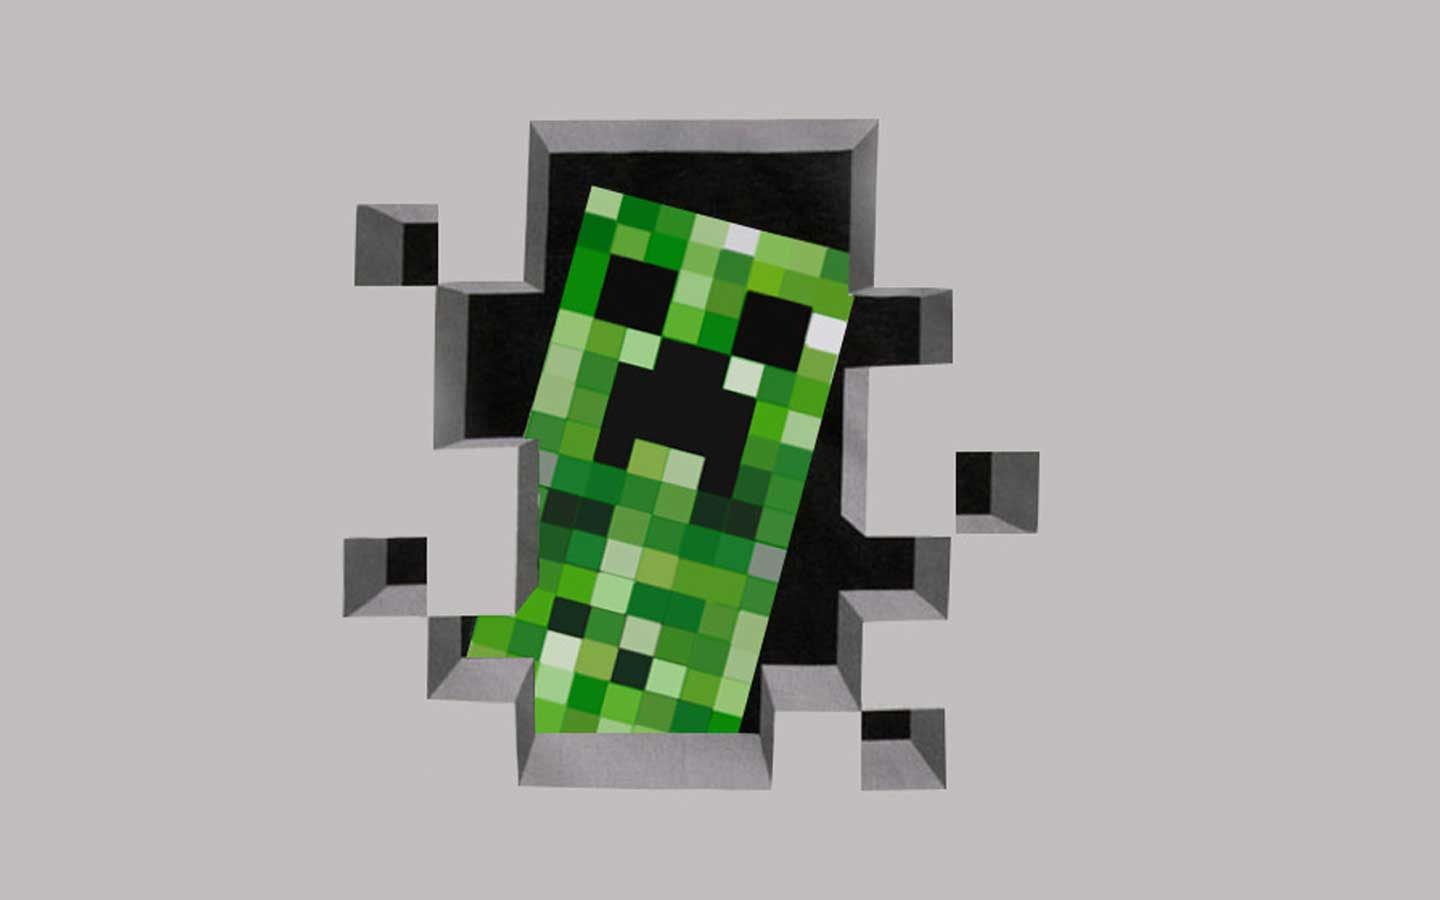 minecraft creeper dessin jeux video info. Black Bedroom Furniture Sets. Home Design Ideas